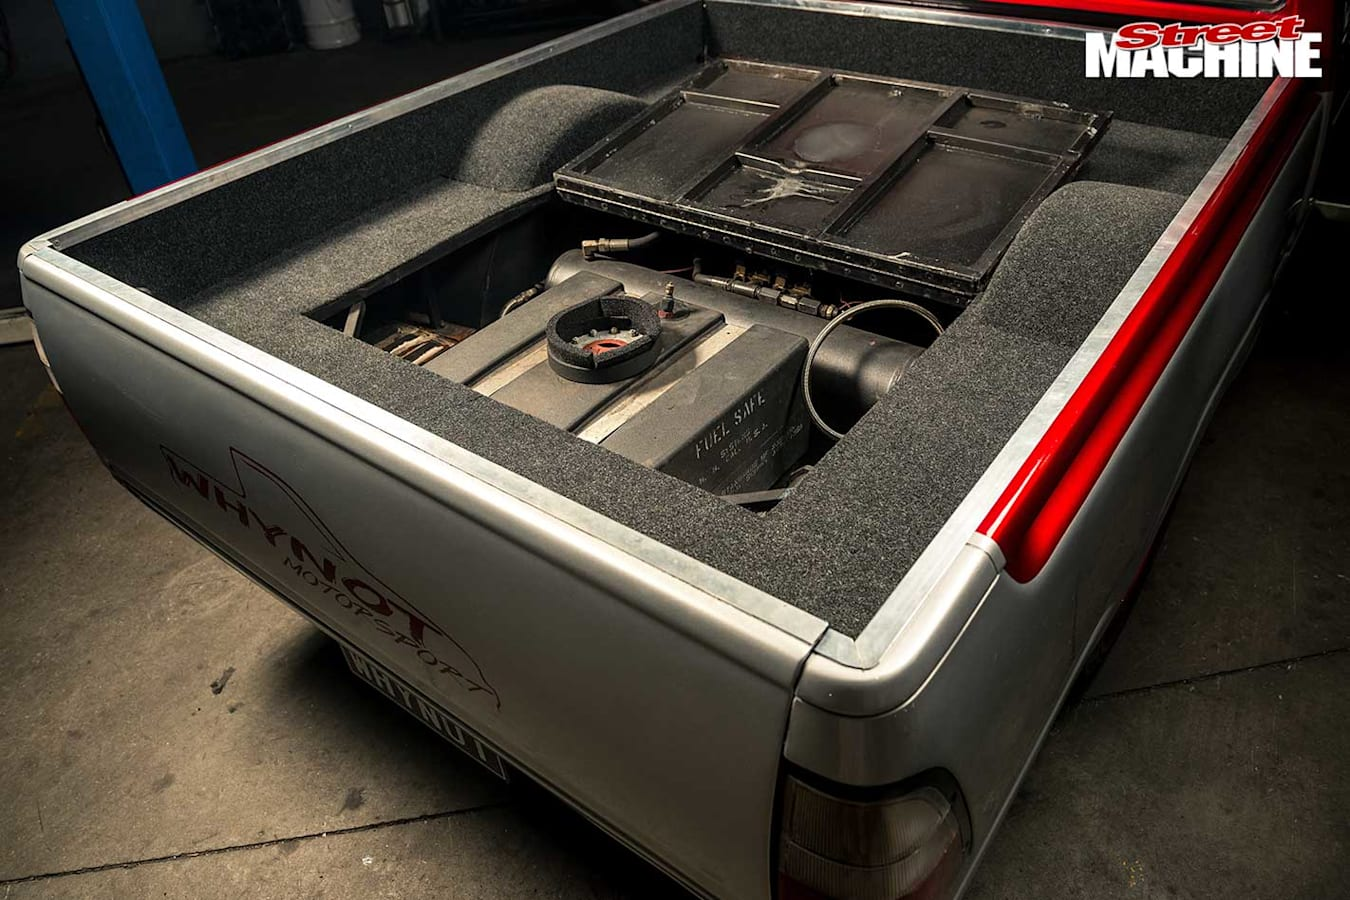 LS-powered Rodeo tray